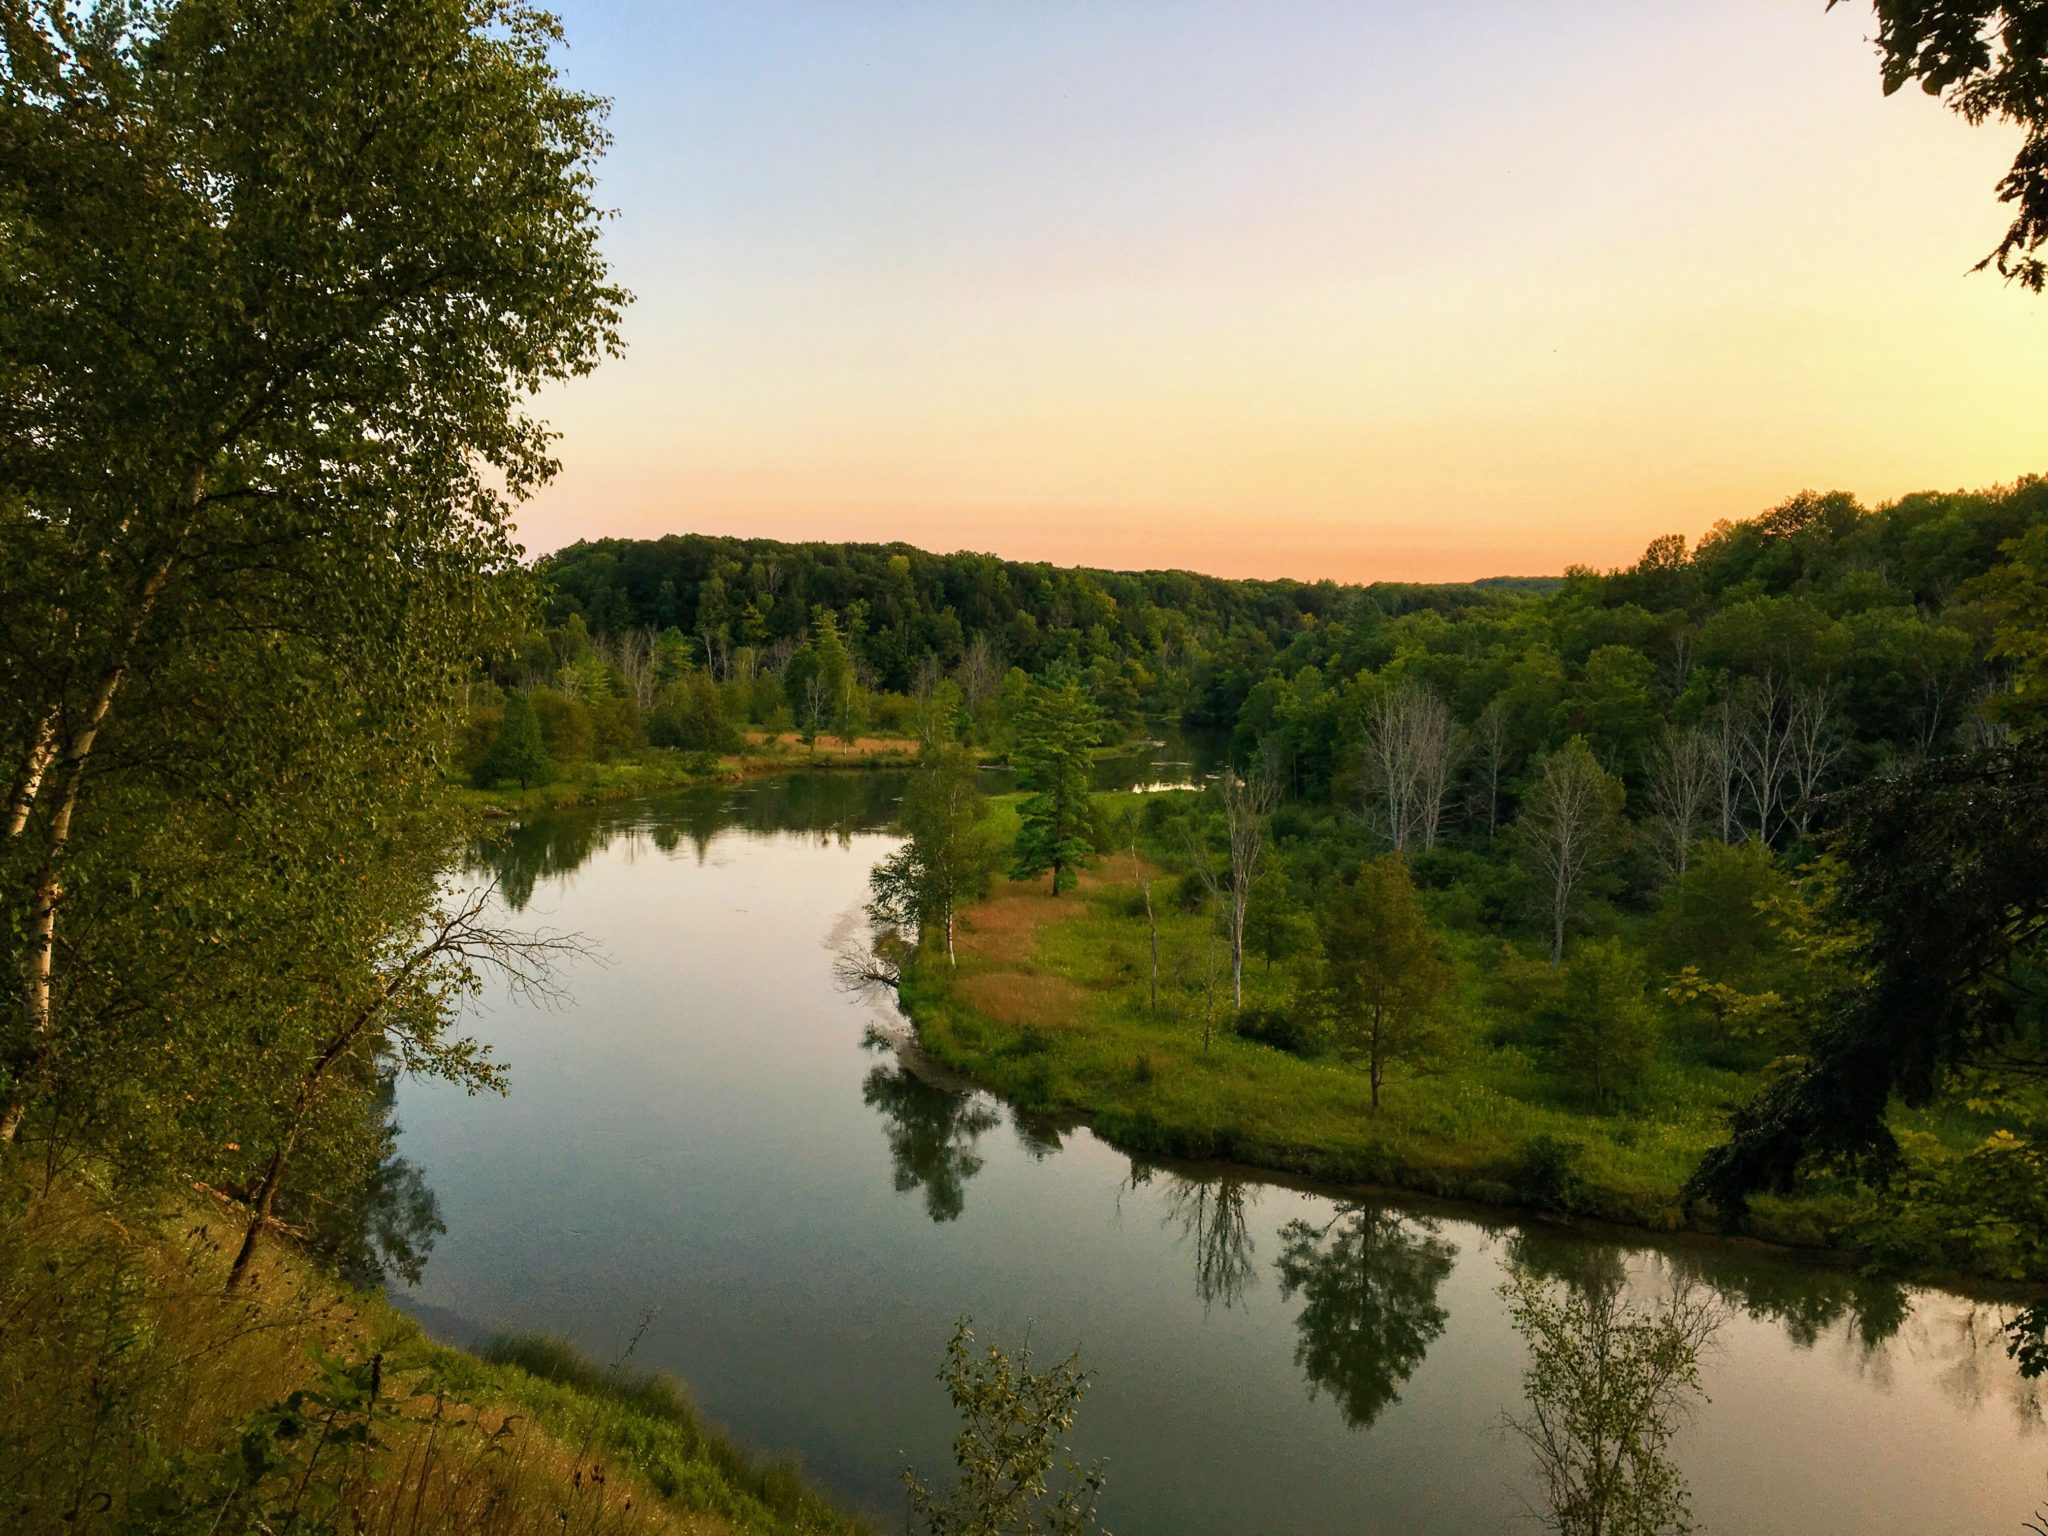 View from Site 10A & 10B - Manistee River Trail